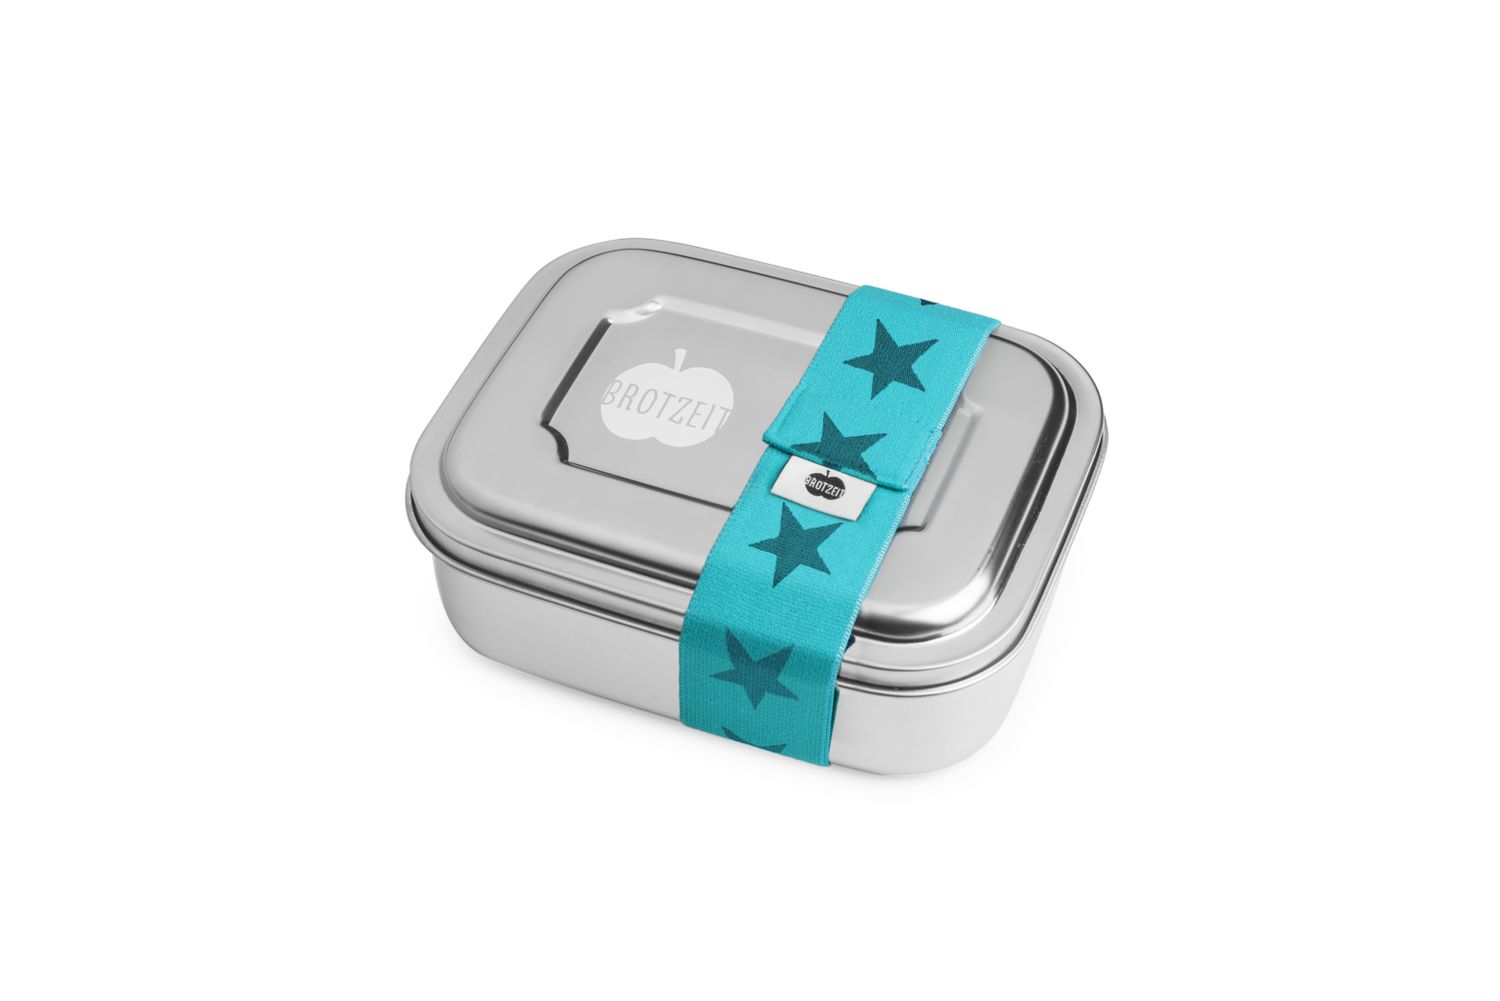 Stainless Steel Oblong Lunch Box